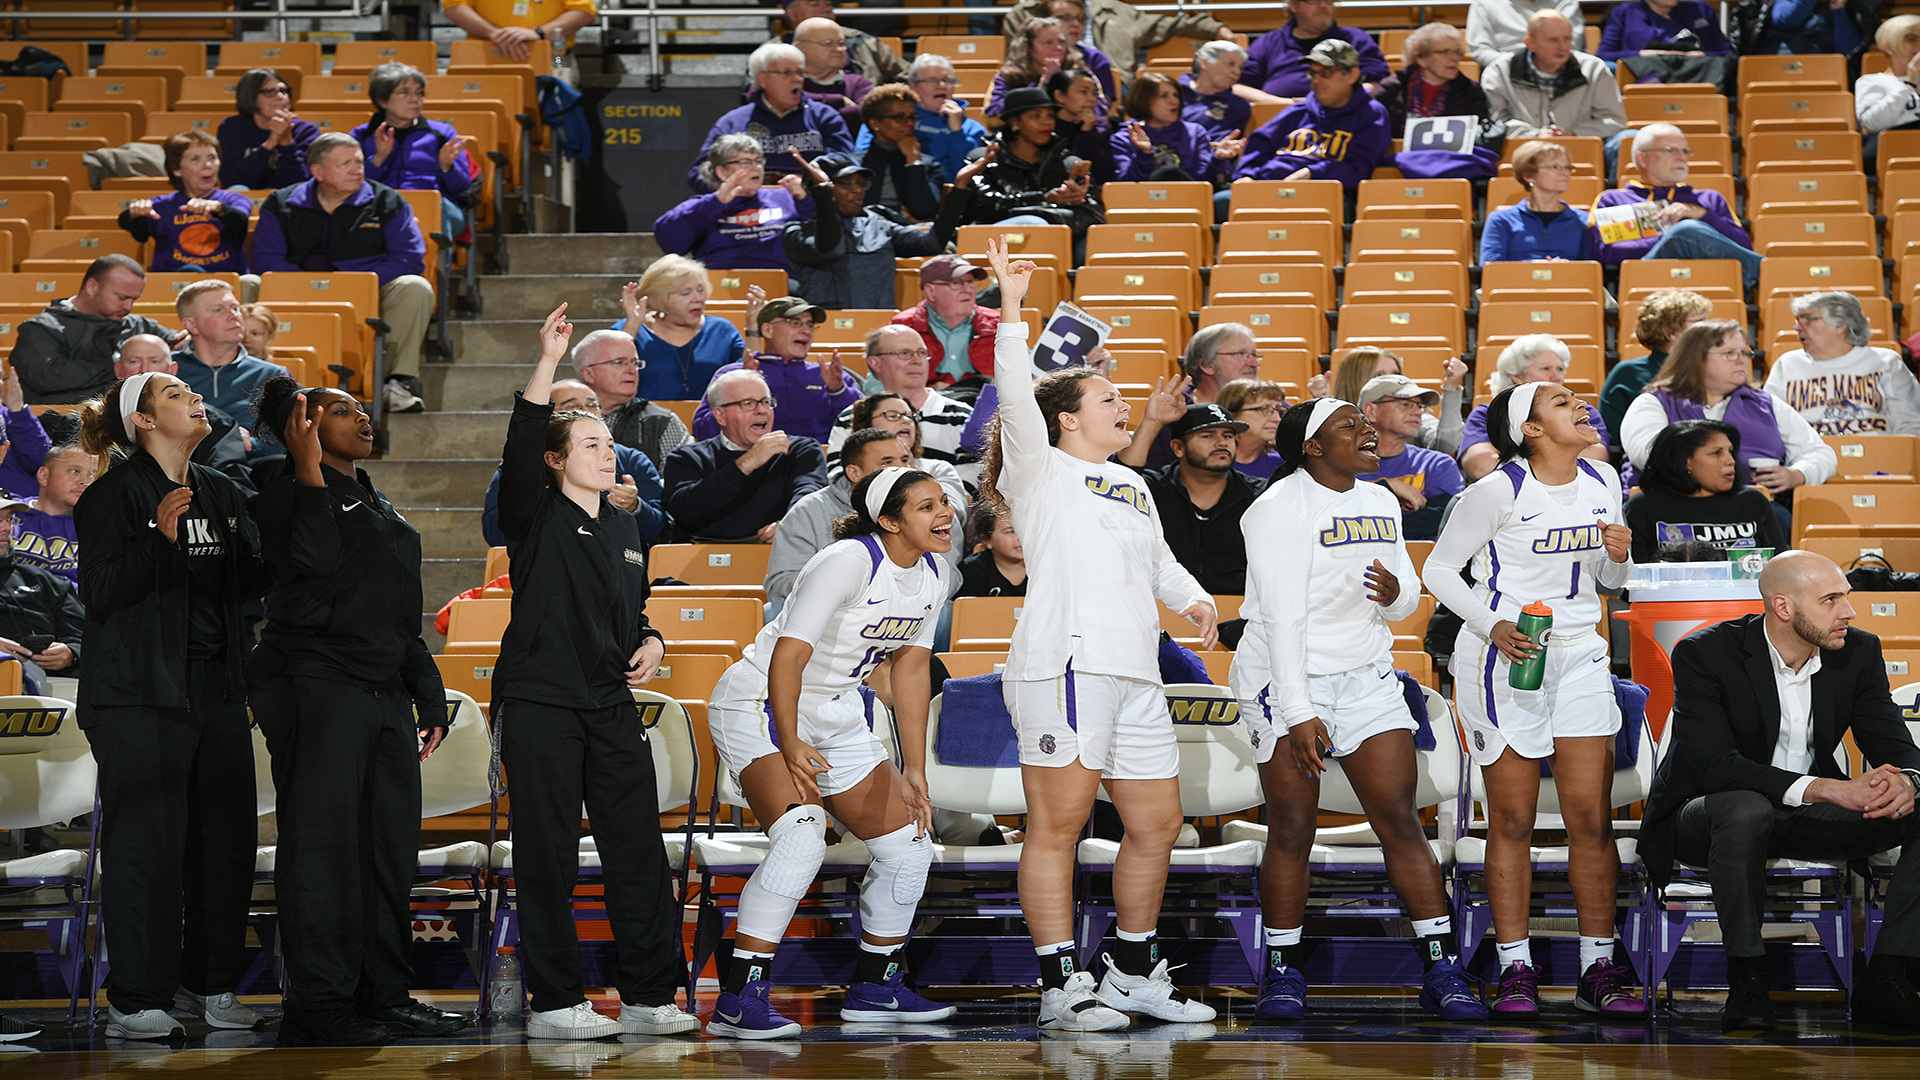 Women's Basketball: Dukes Dominate Cougars